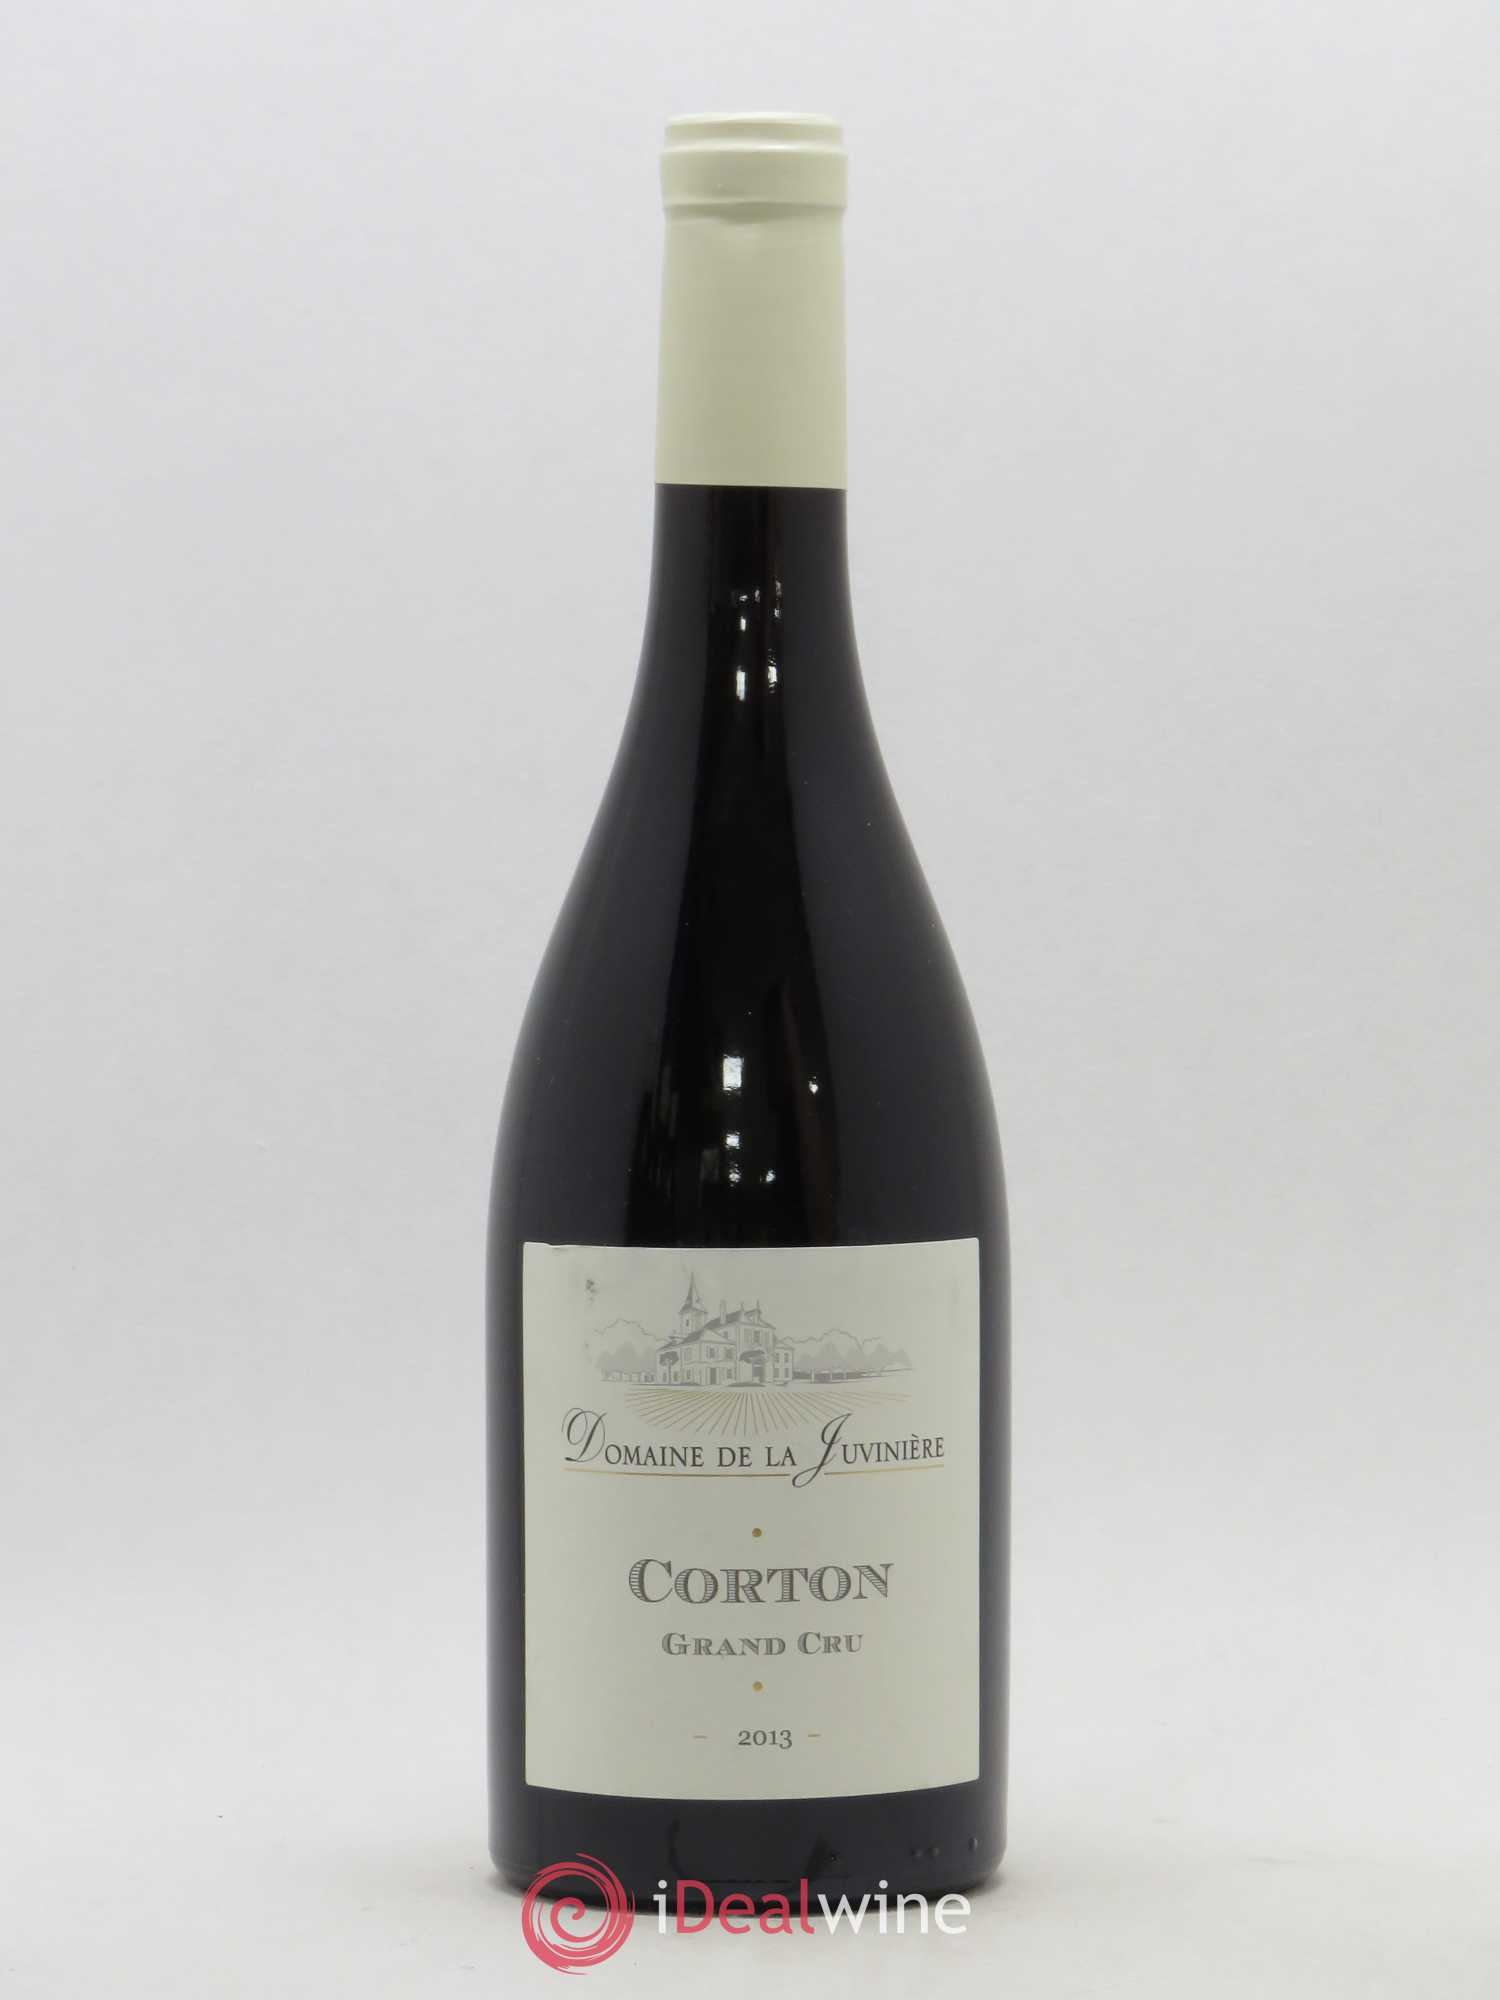 Corton Grand Cru Domaine De La Juvinière 2013 - Lot of 1 Bottle